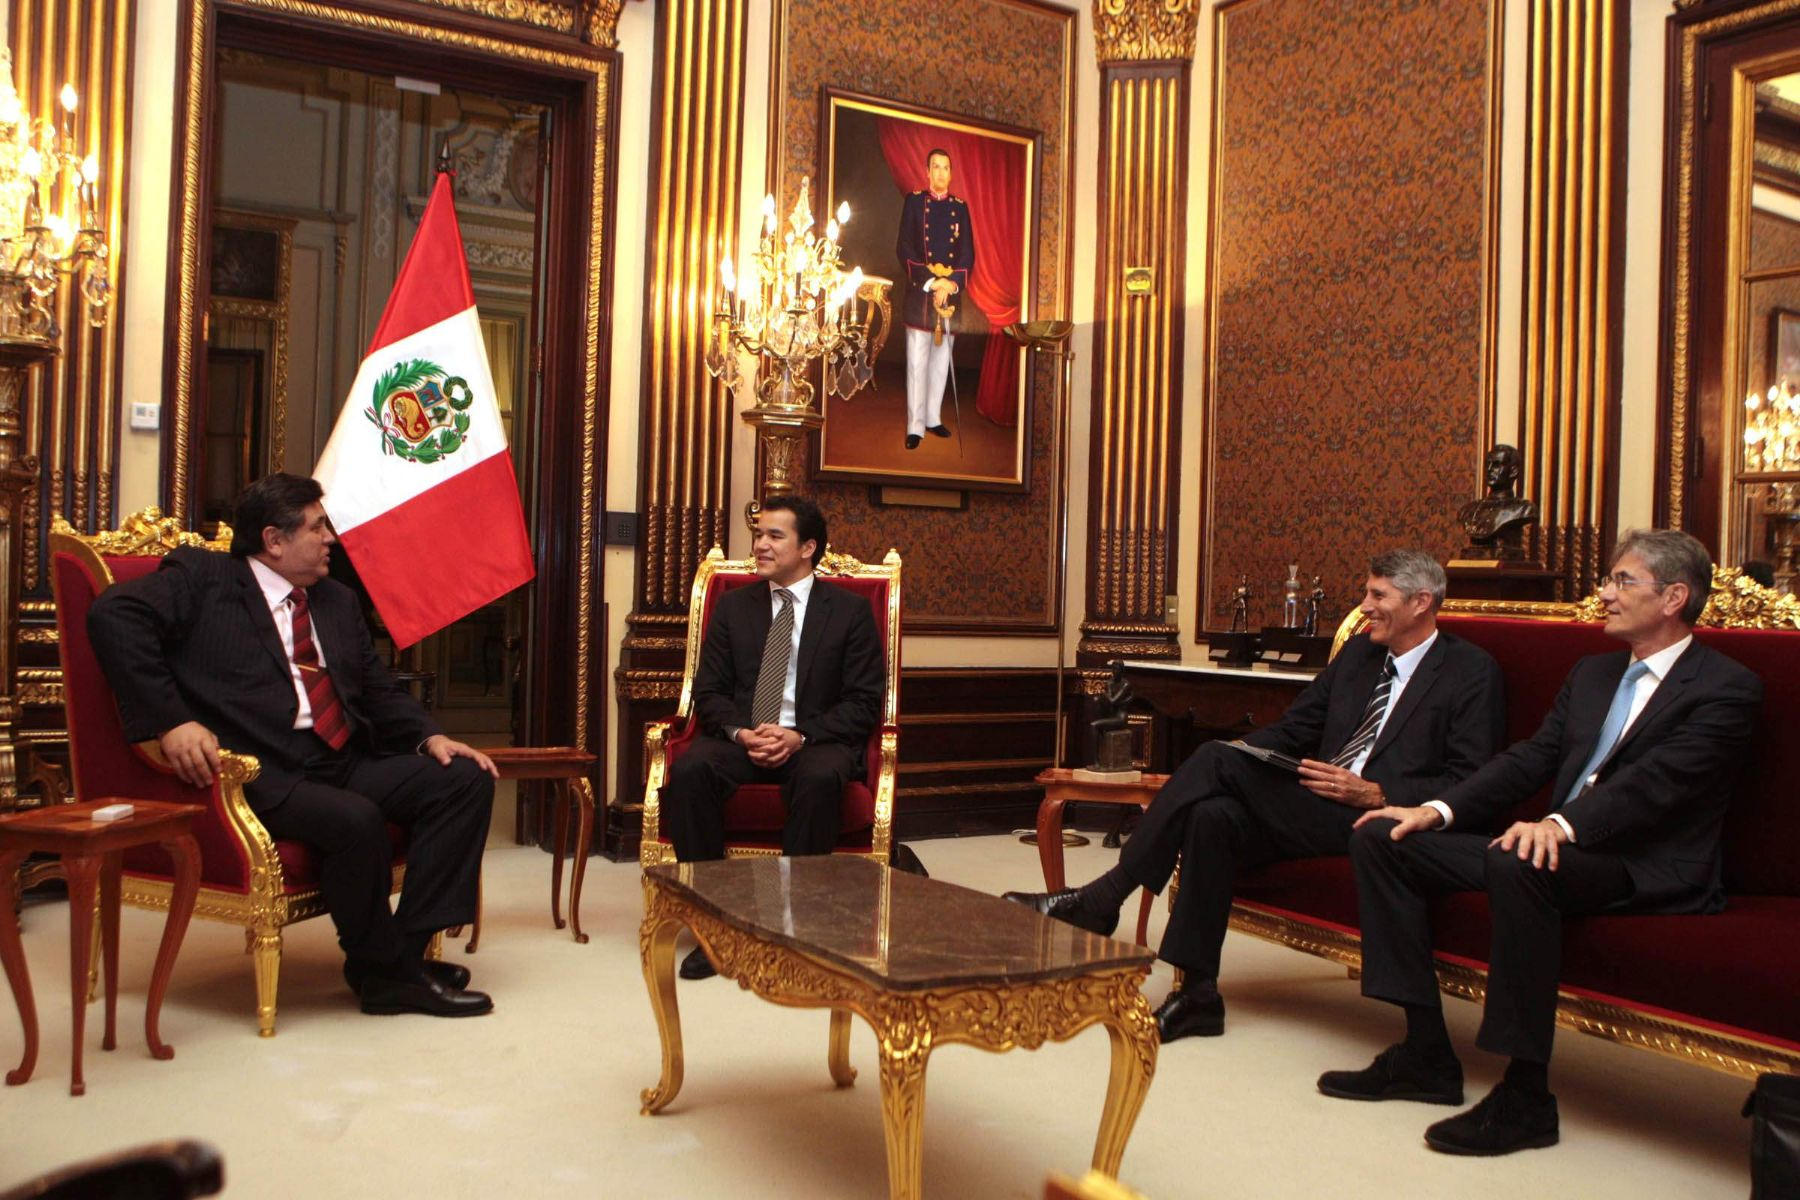 Peruvian President Alan Garcia Perez met Friday morning with Perenco Group's chairman Francois Perrodo and general manager Daniel Kadjar at the Government Palace in Lima. Photo: Sepres.